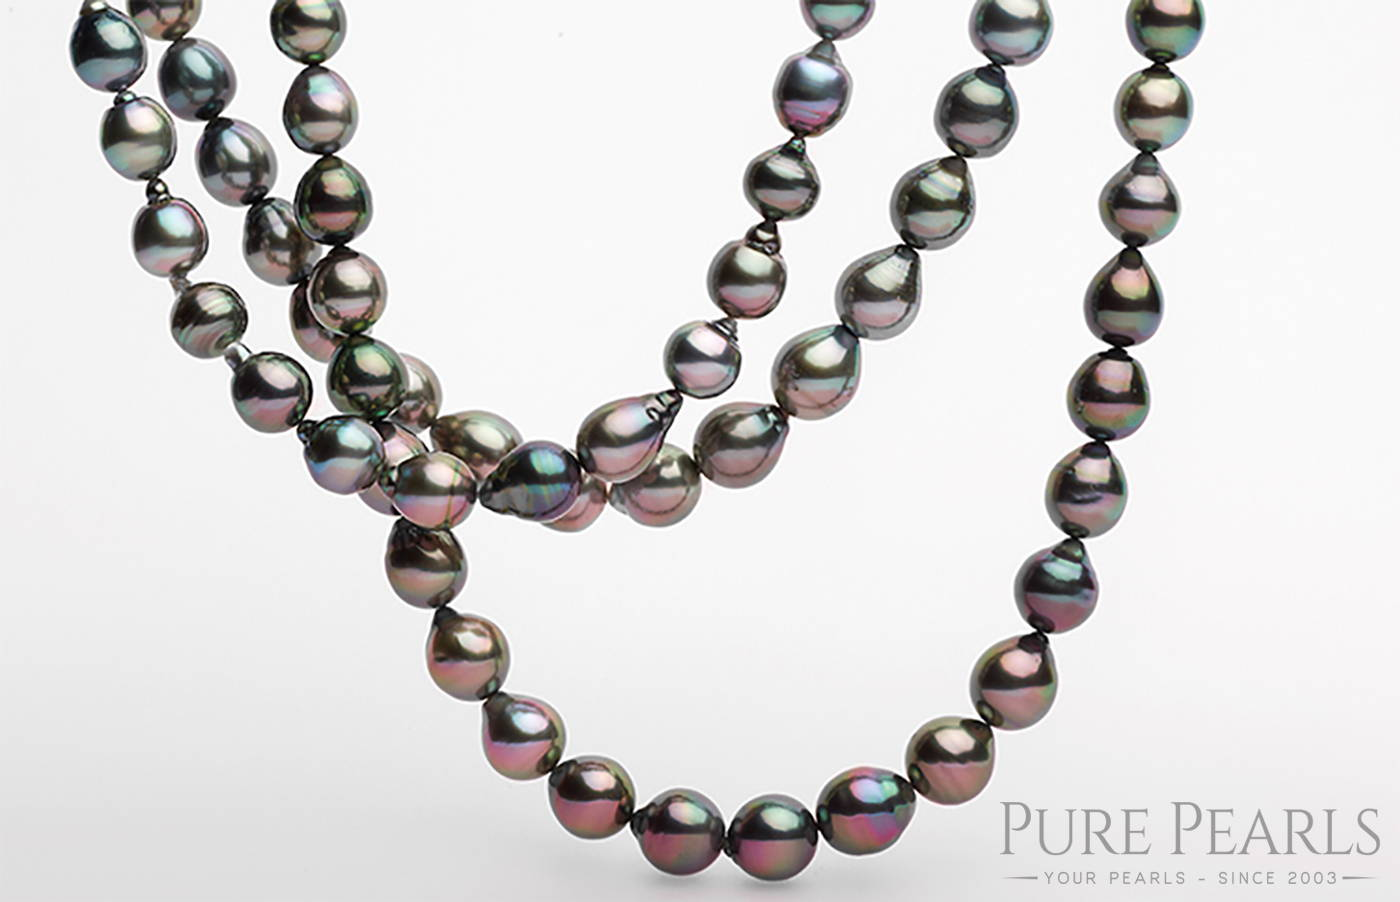 Black Tahitian Pearls Shimmer with Natural Peacock Overtones and are from French Polynesia